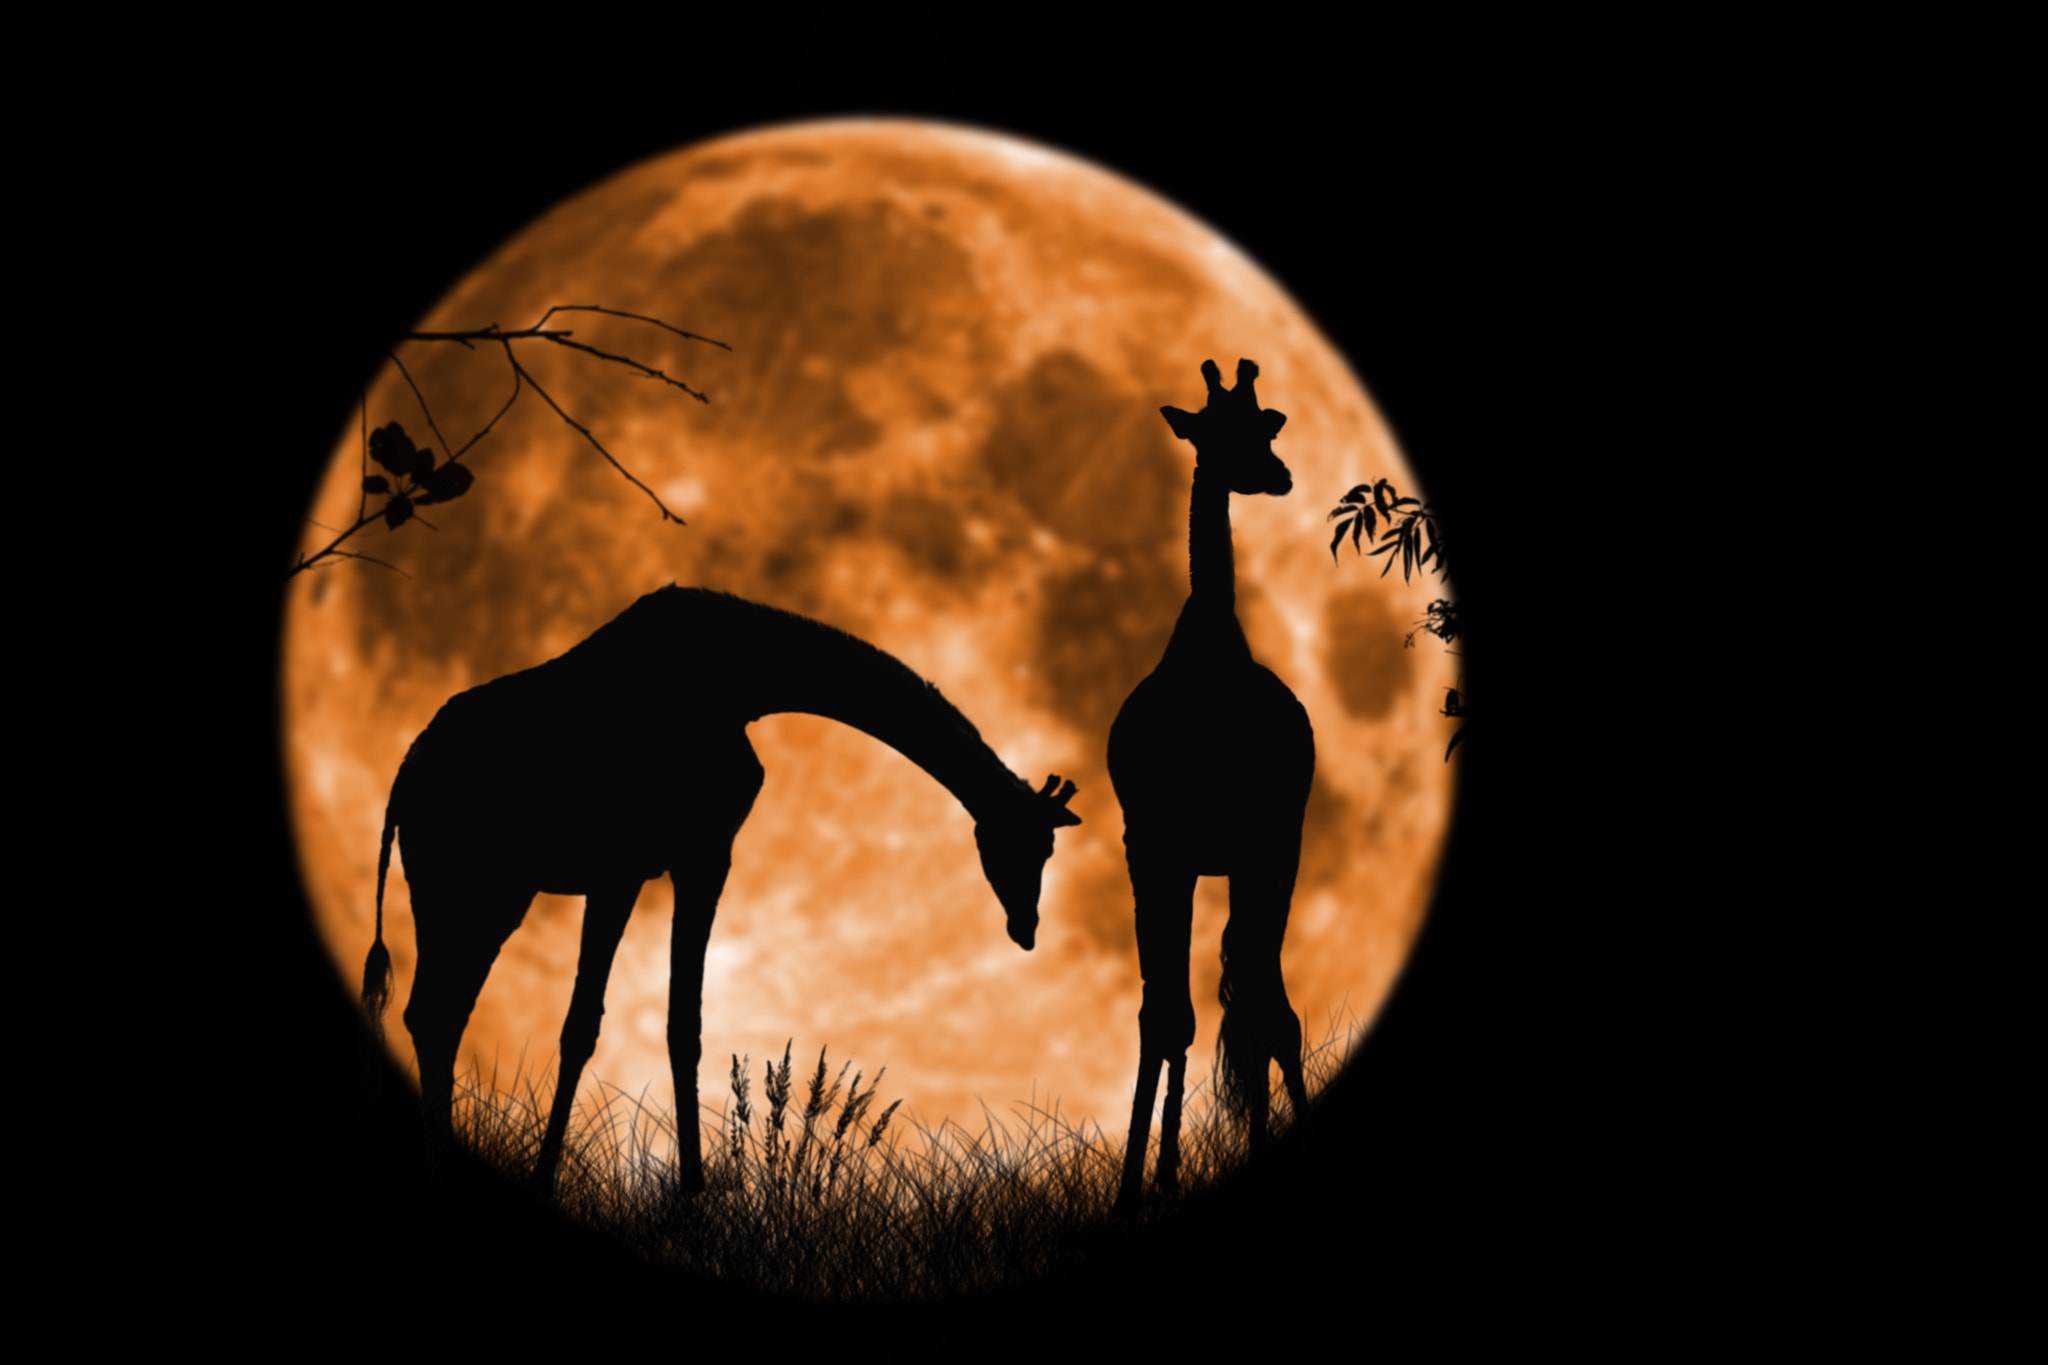 Photograph Giraffes at Full Moon by Tony Antoniou on 500px